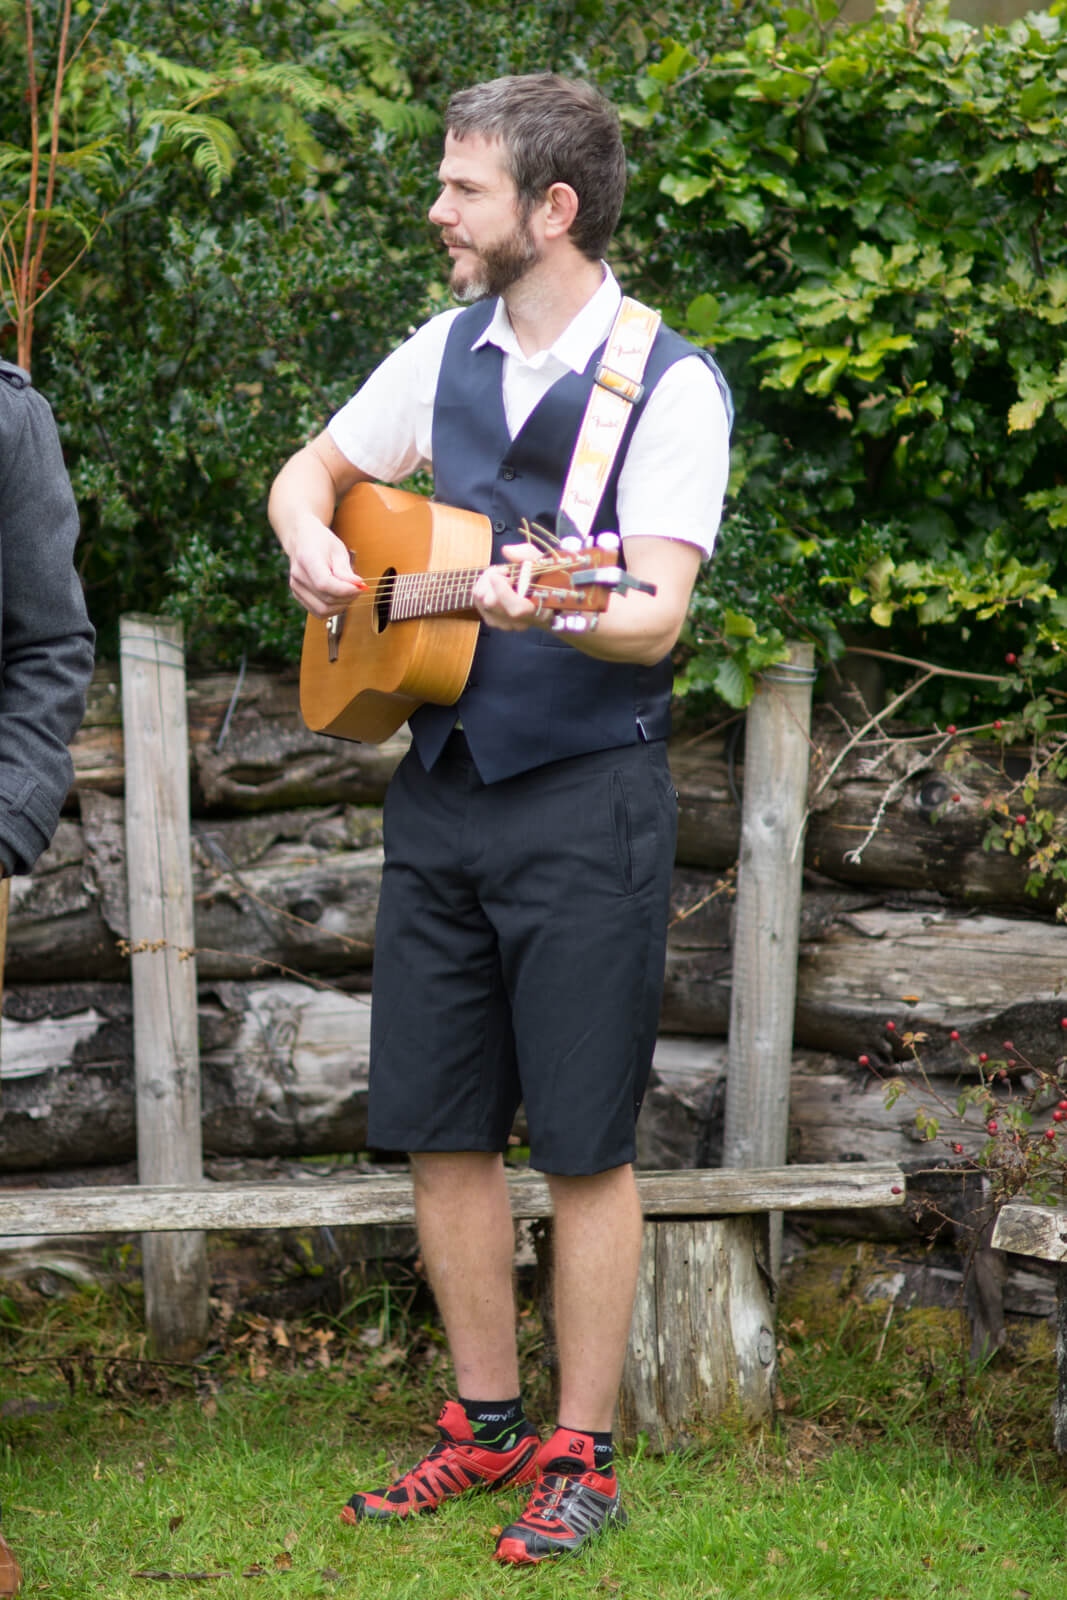 Usher in shorts plays guitar at the wedding